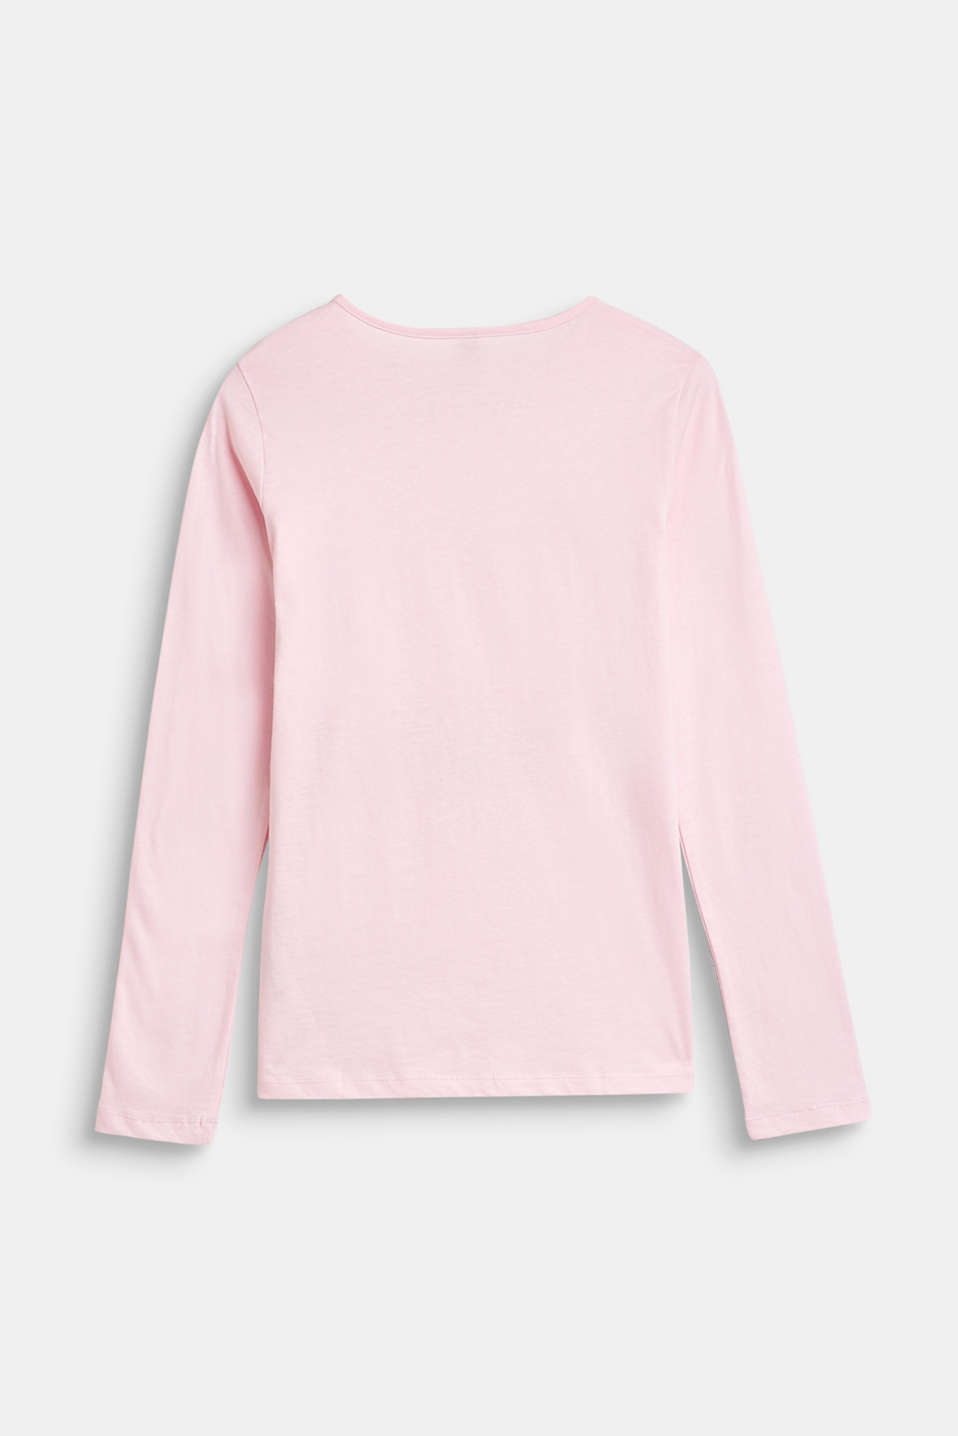 Statement print long sleeve top, 100% cotton, LCBLUSH, detail image number 1